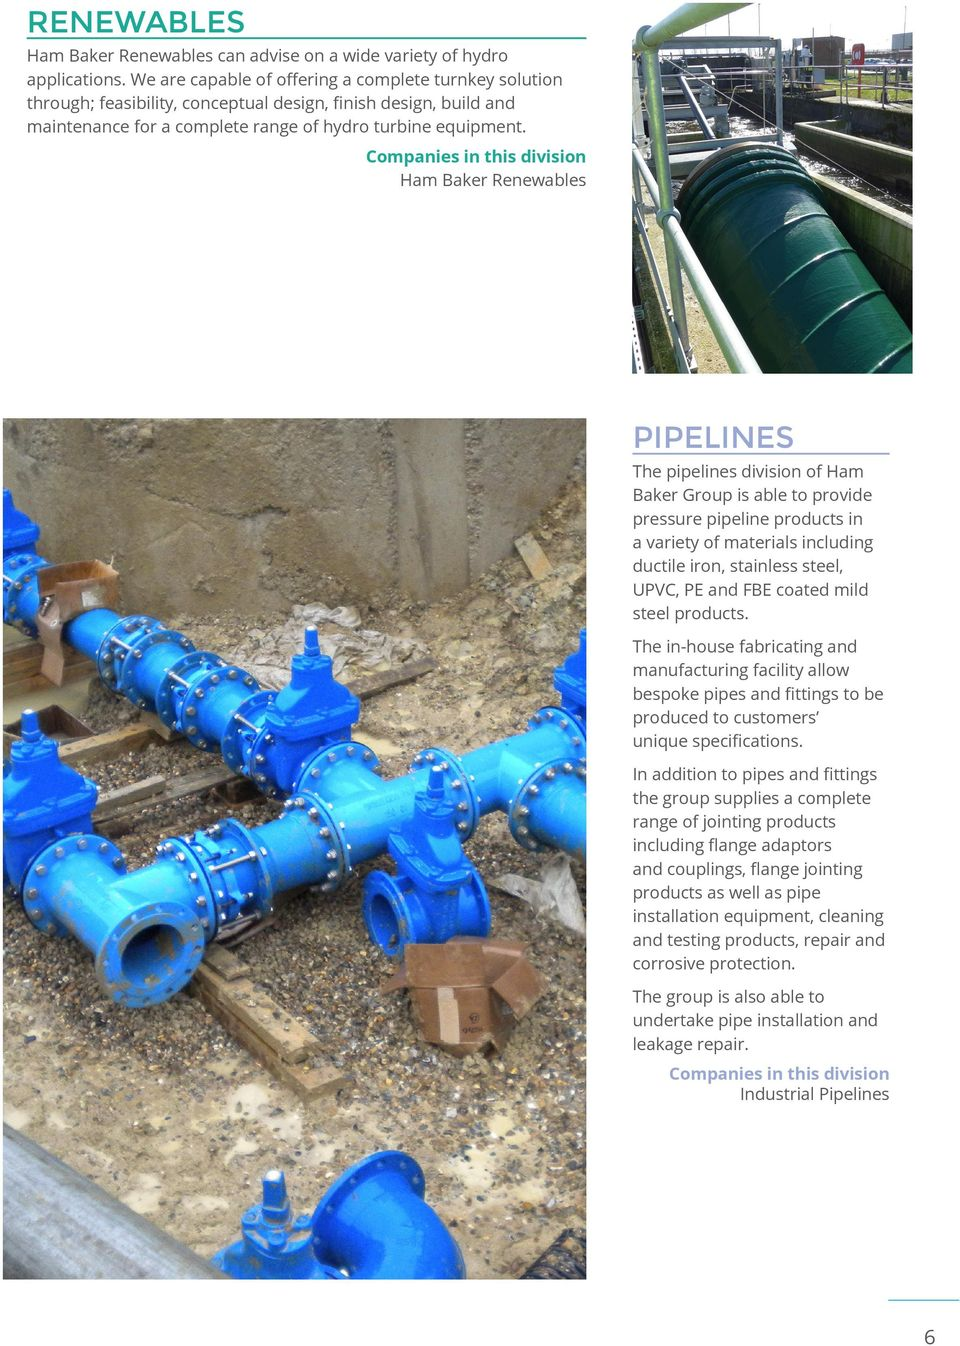 Ham Baker Renewables PIPELINES The pipelines division of Ham Baker Group is able to provide pressure pipeline products in a variety of materials including ductile iron, stainless steel, UPVC, PE and